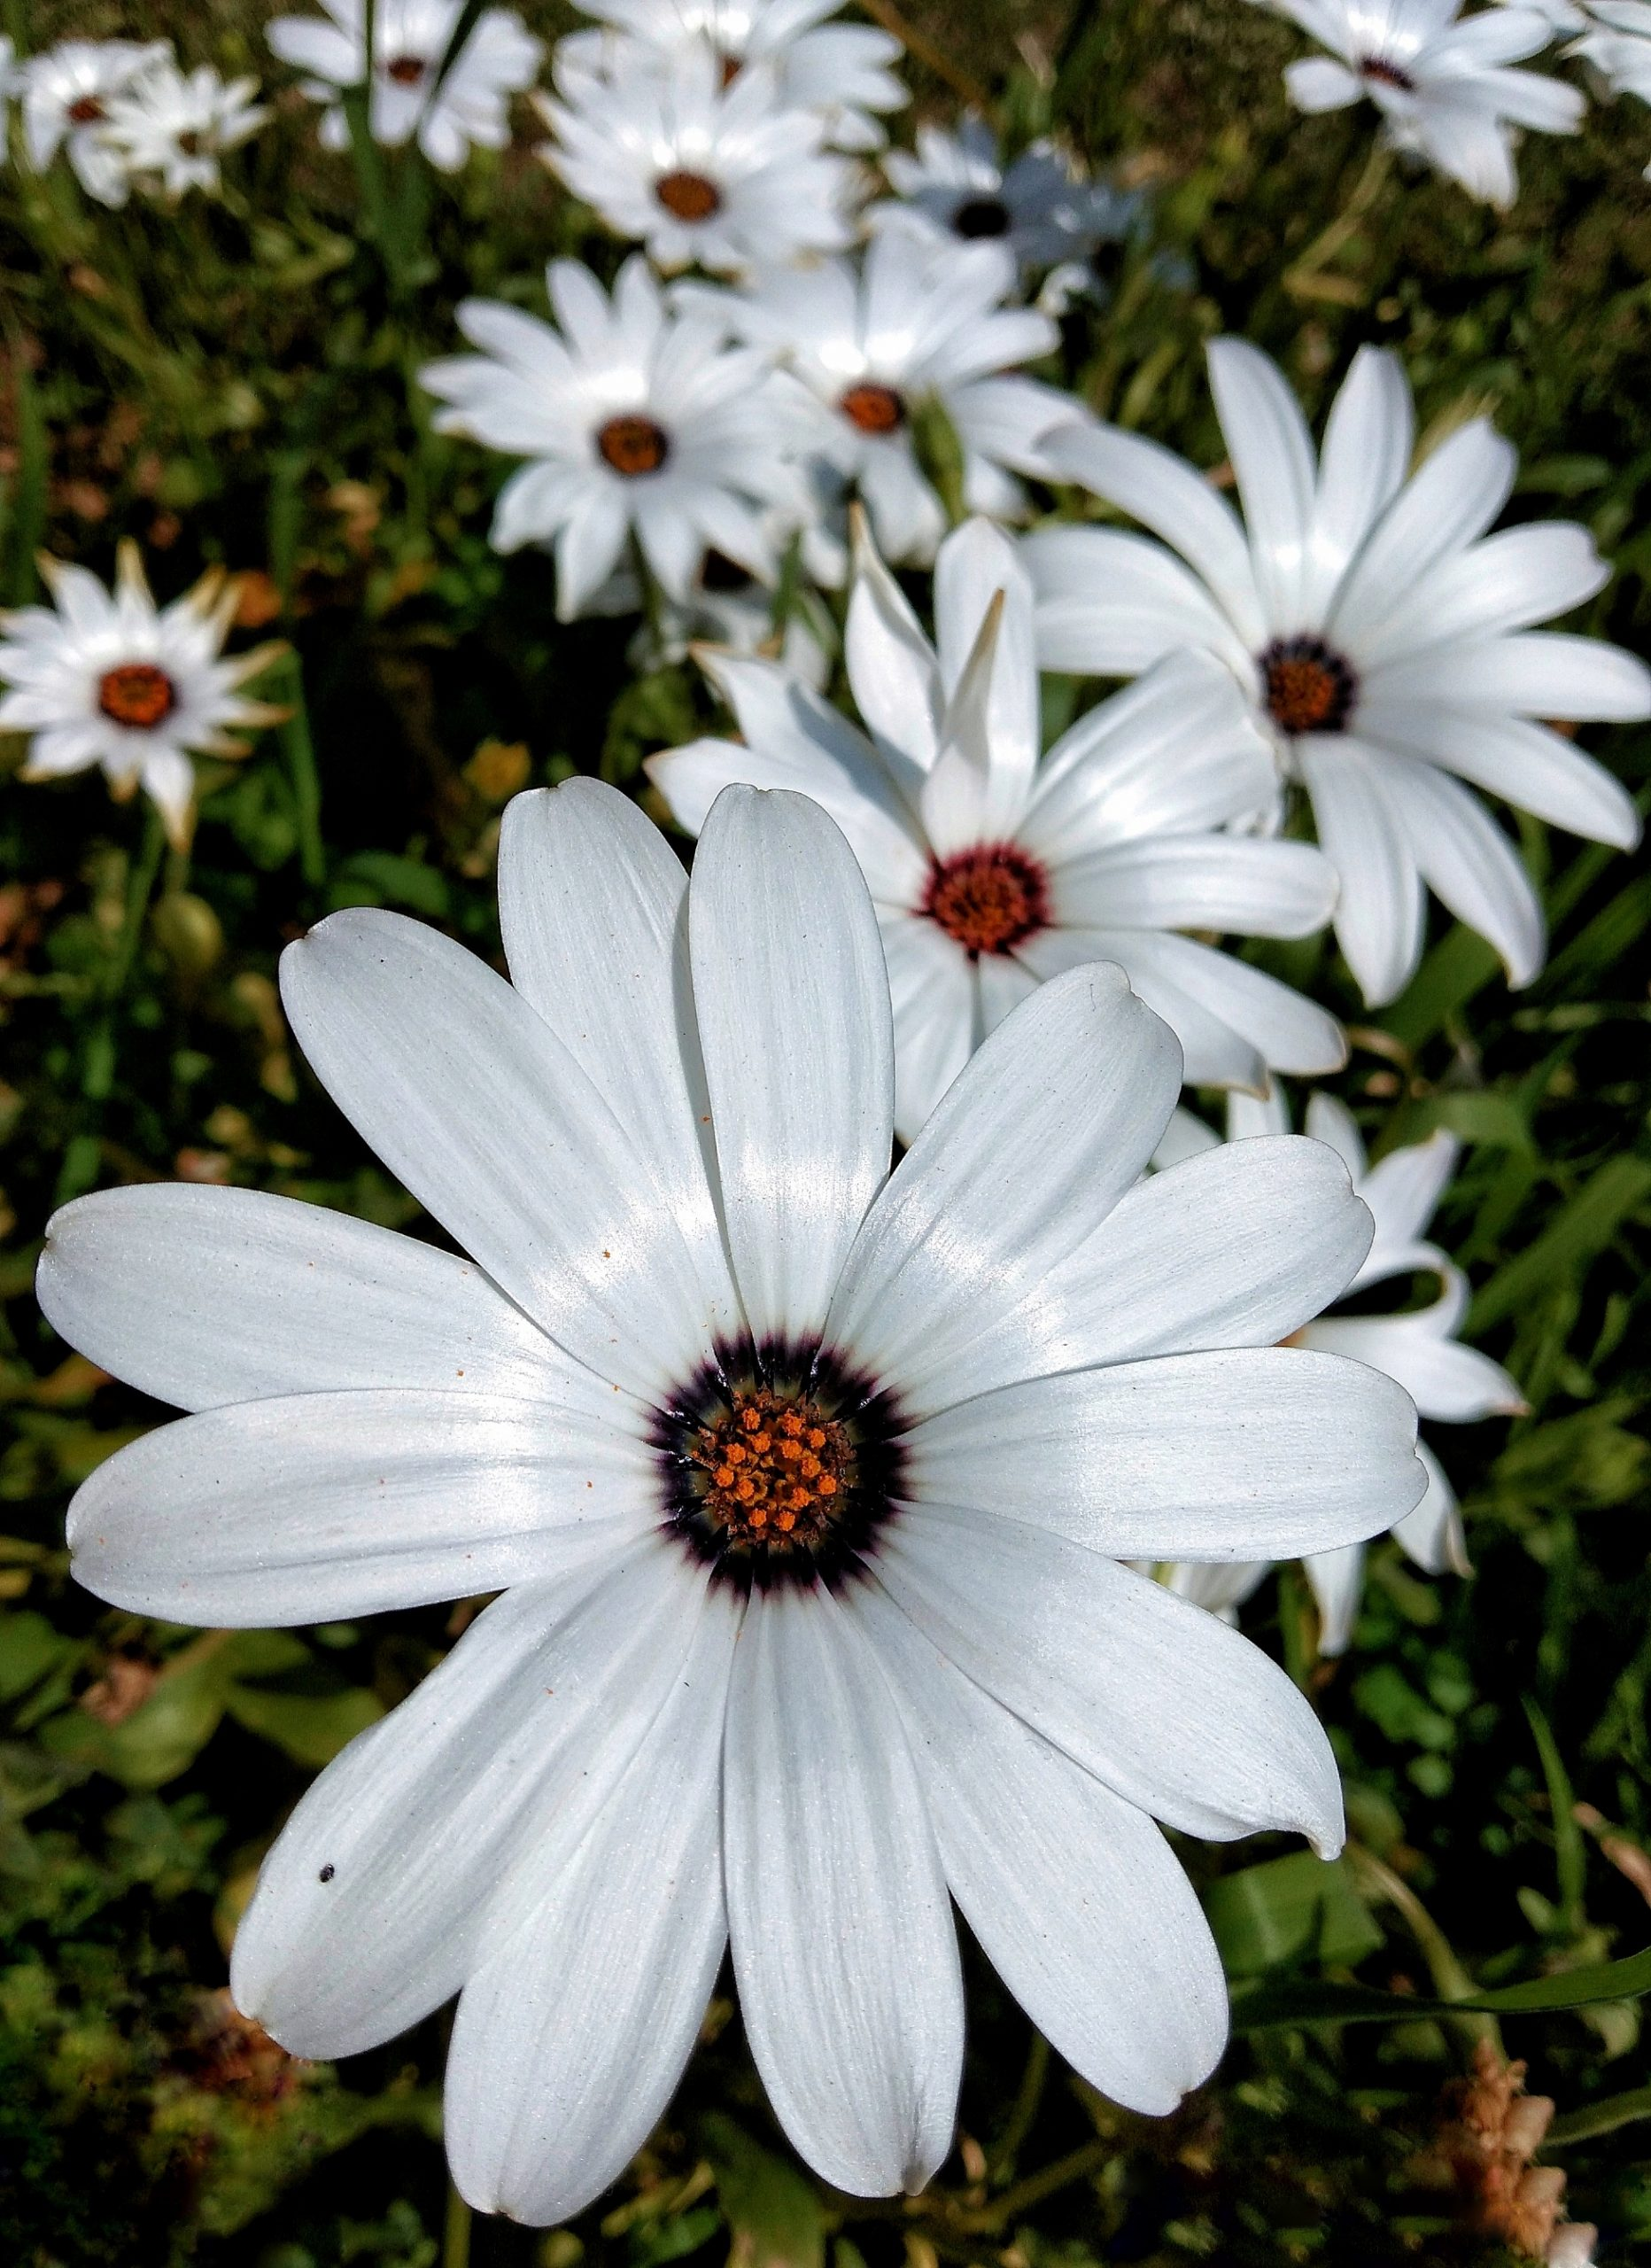 Bunch of white African Daisy flowers